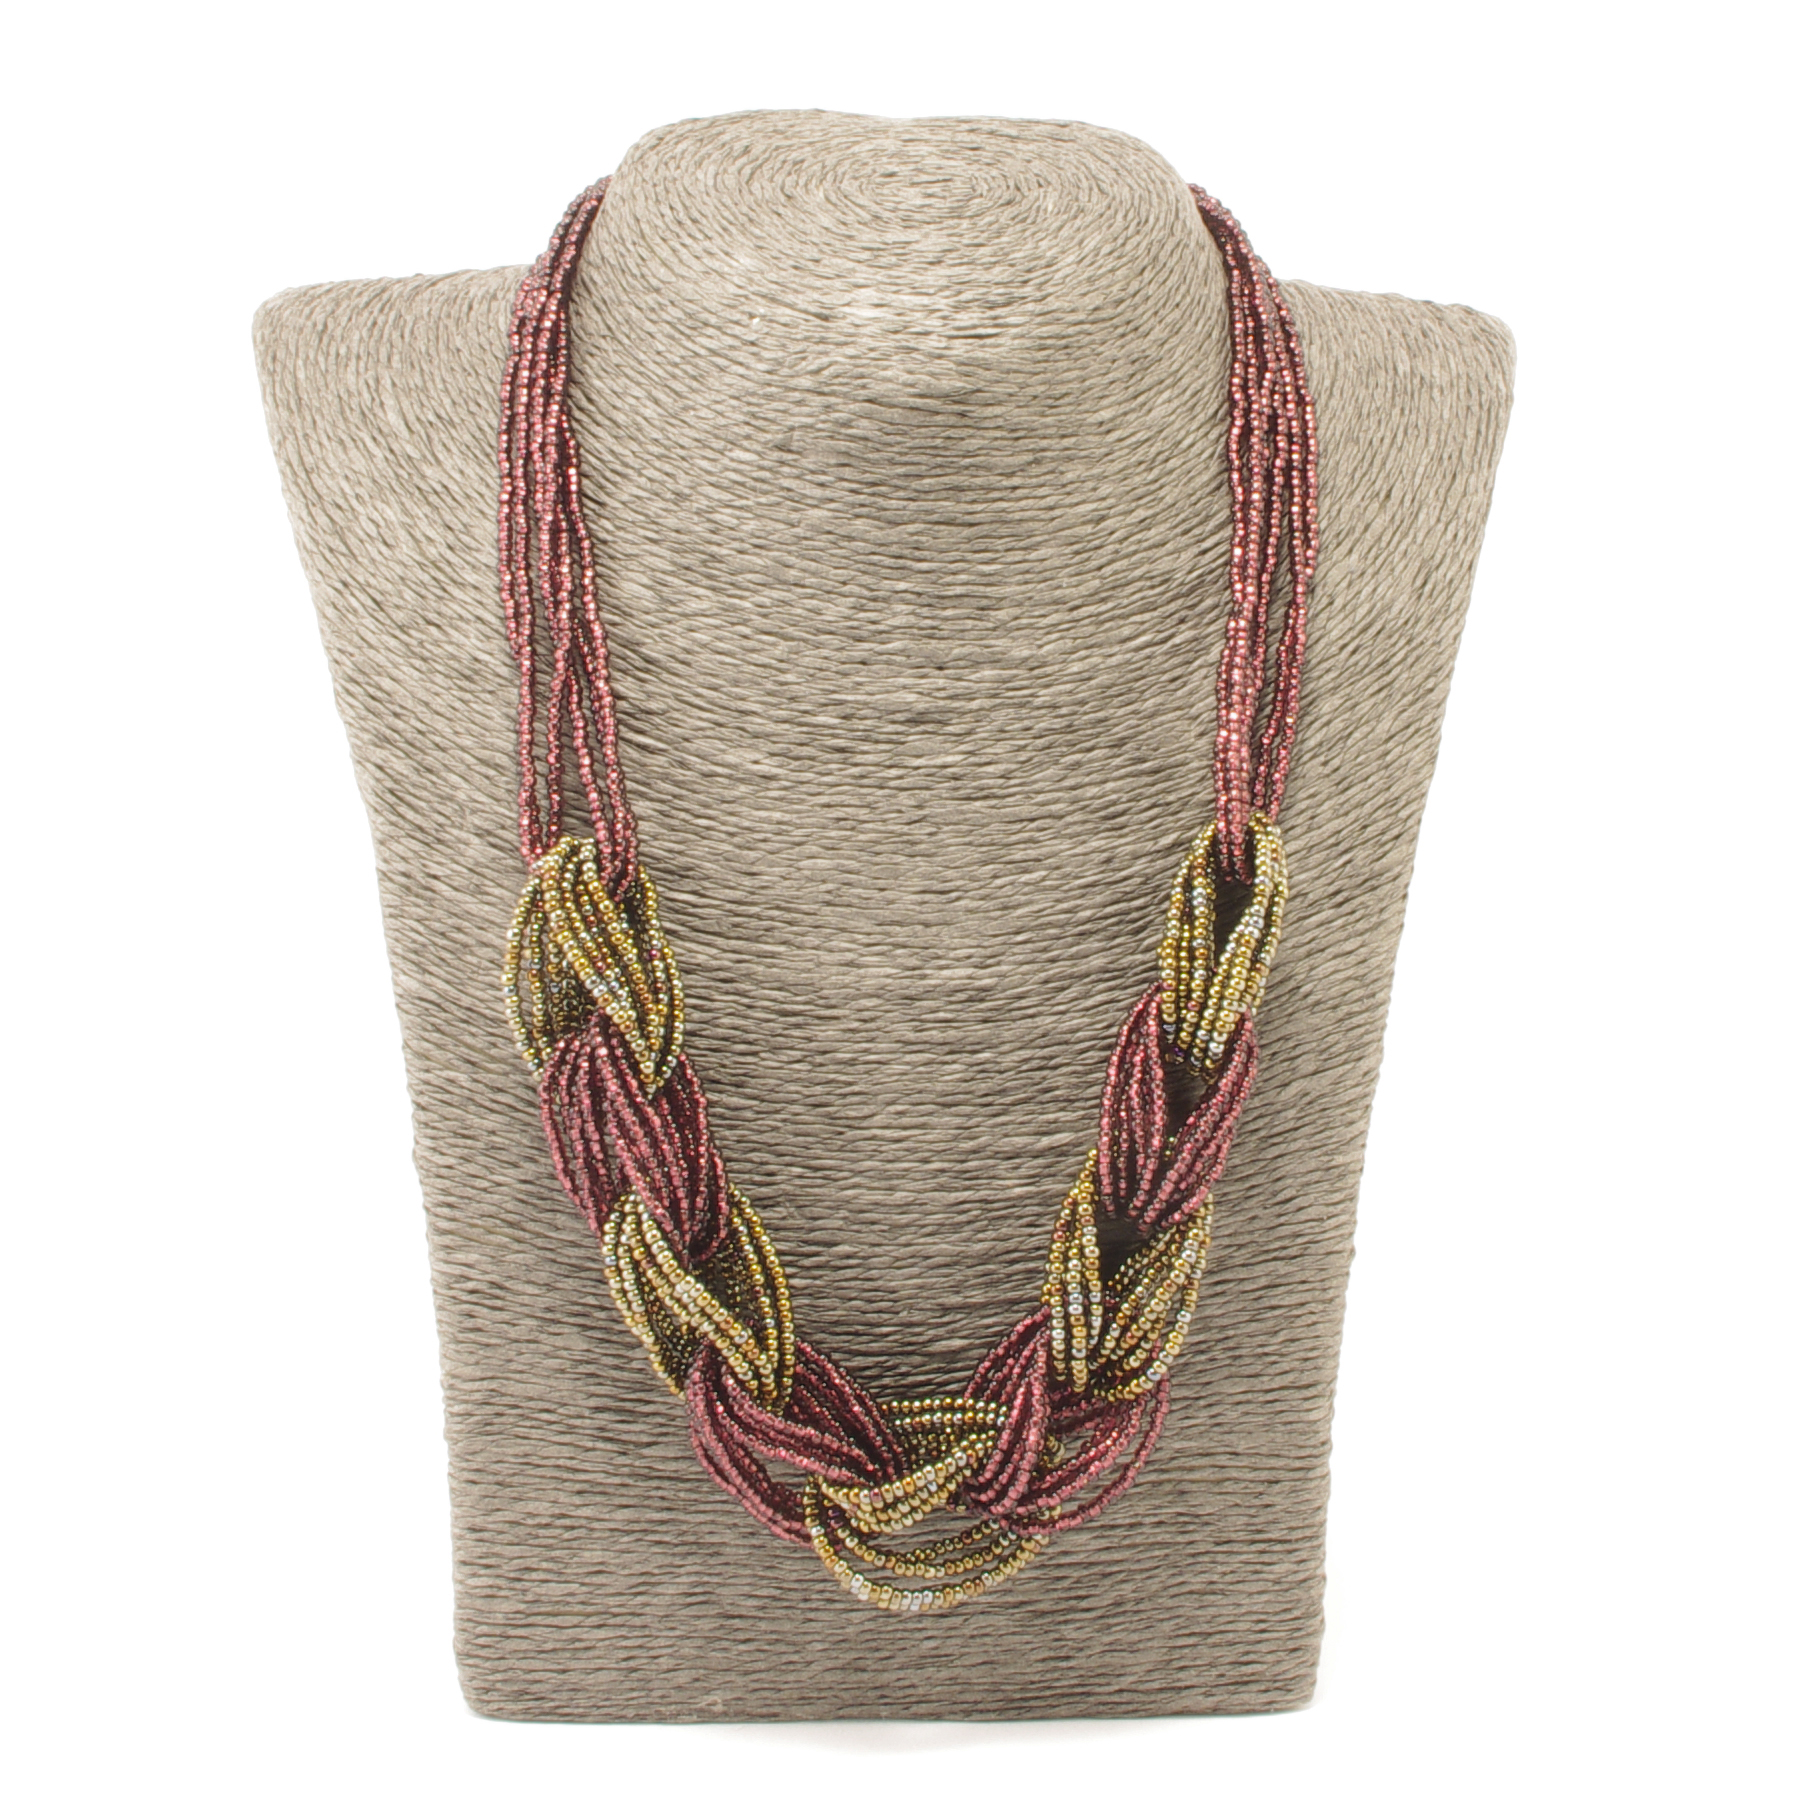 Fair Trade Braided Guatemalan Lily Necklace